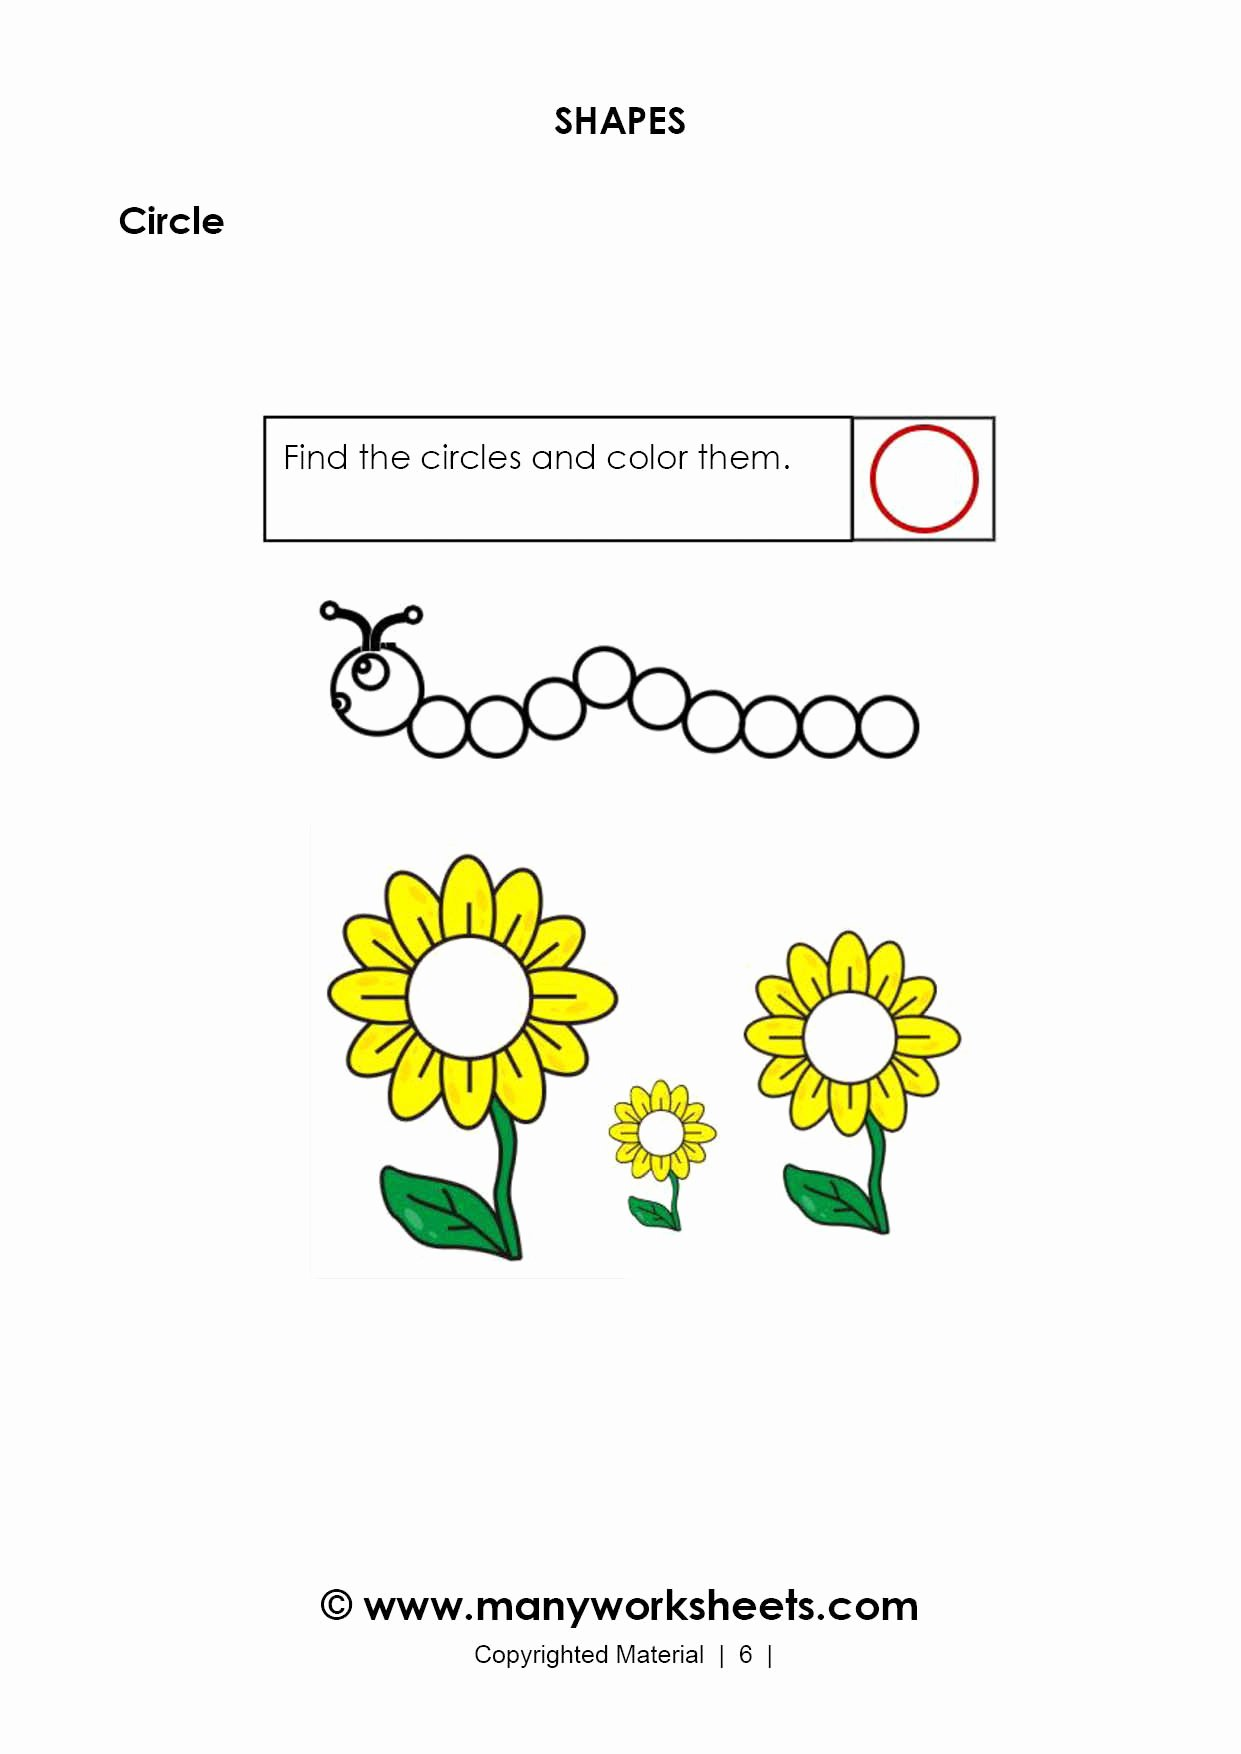 Circle Shape Worksheets for Preschoolers top Recognizing Circle Shape Worksheet